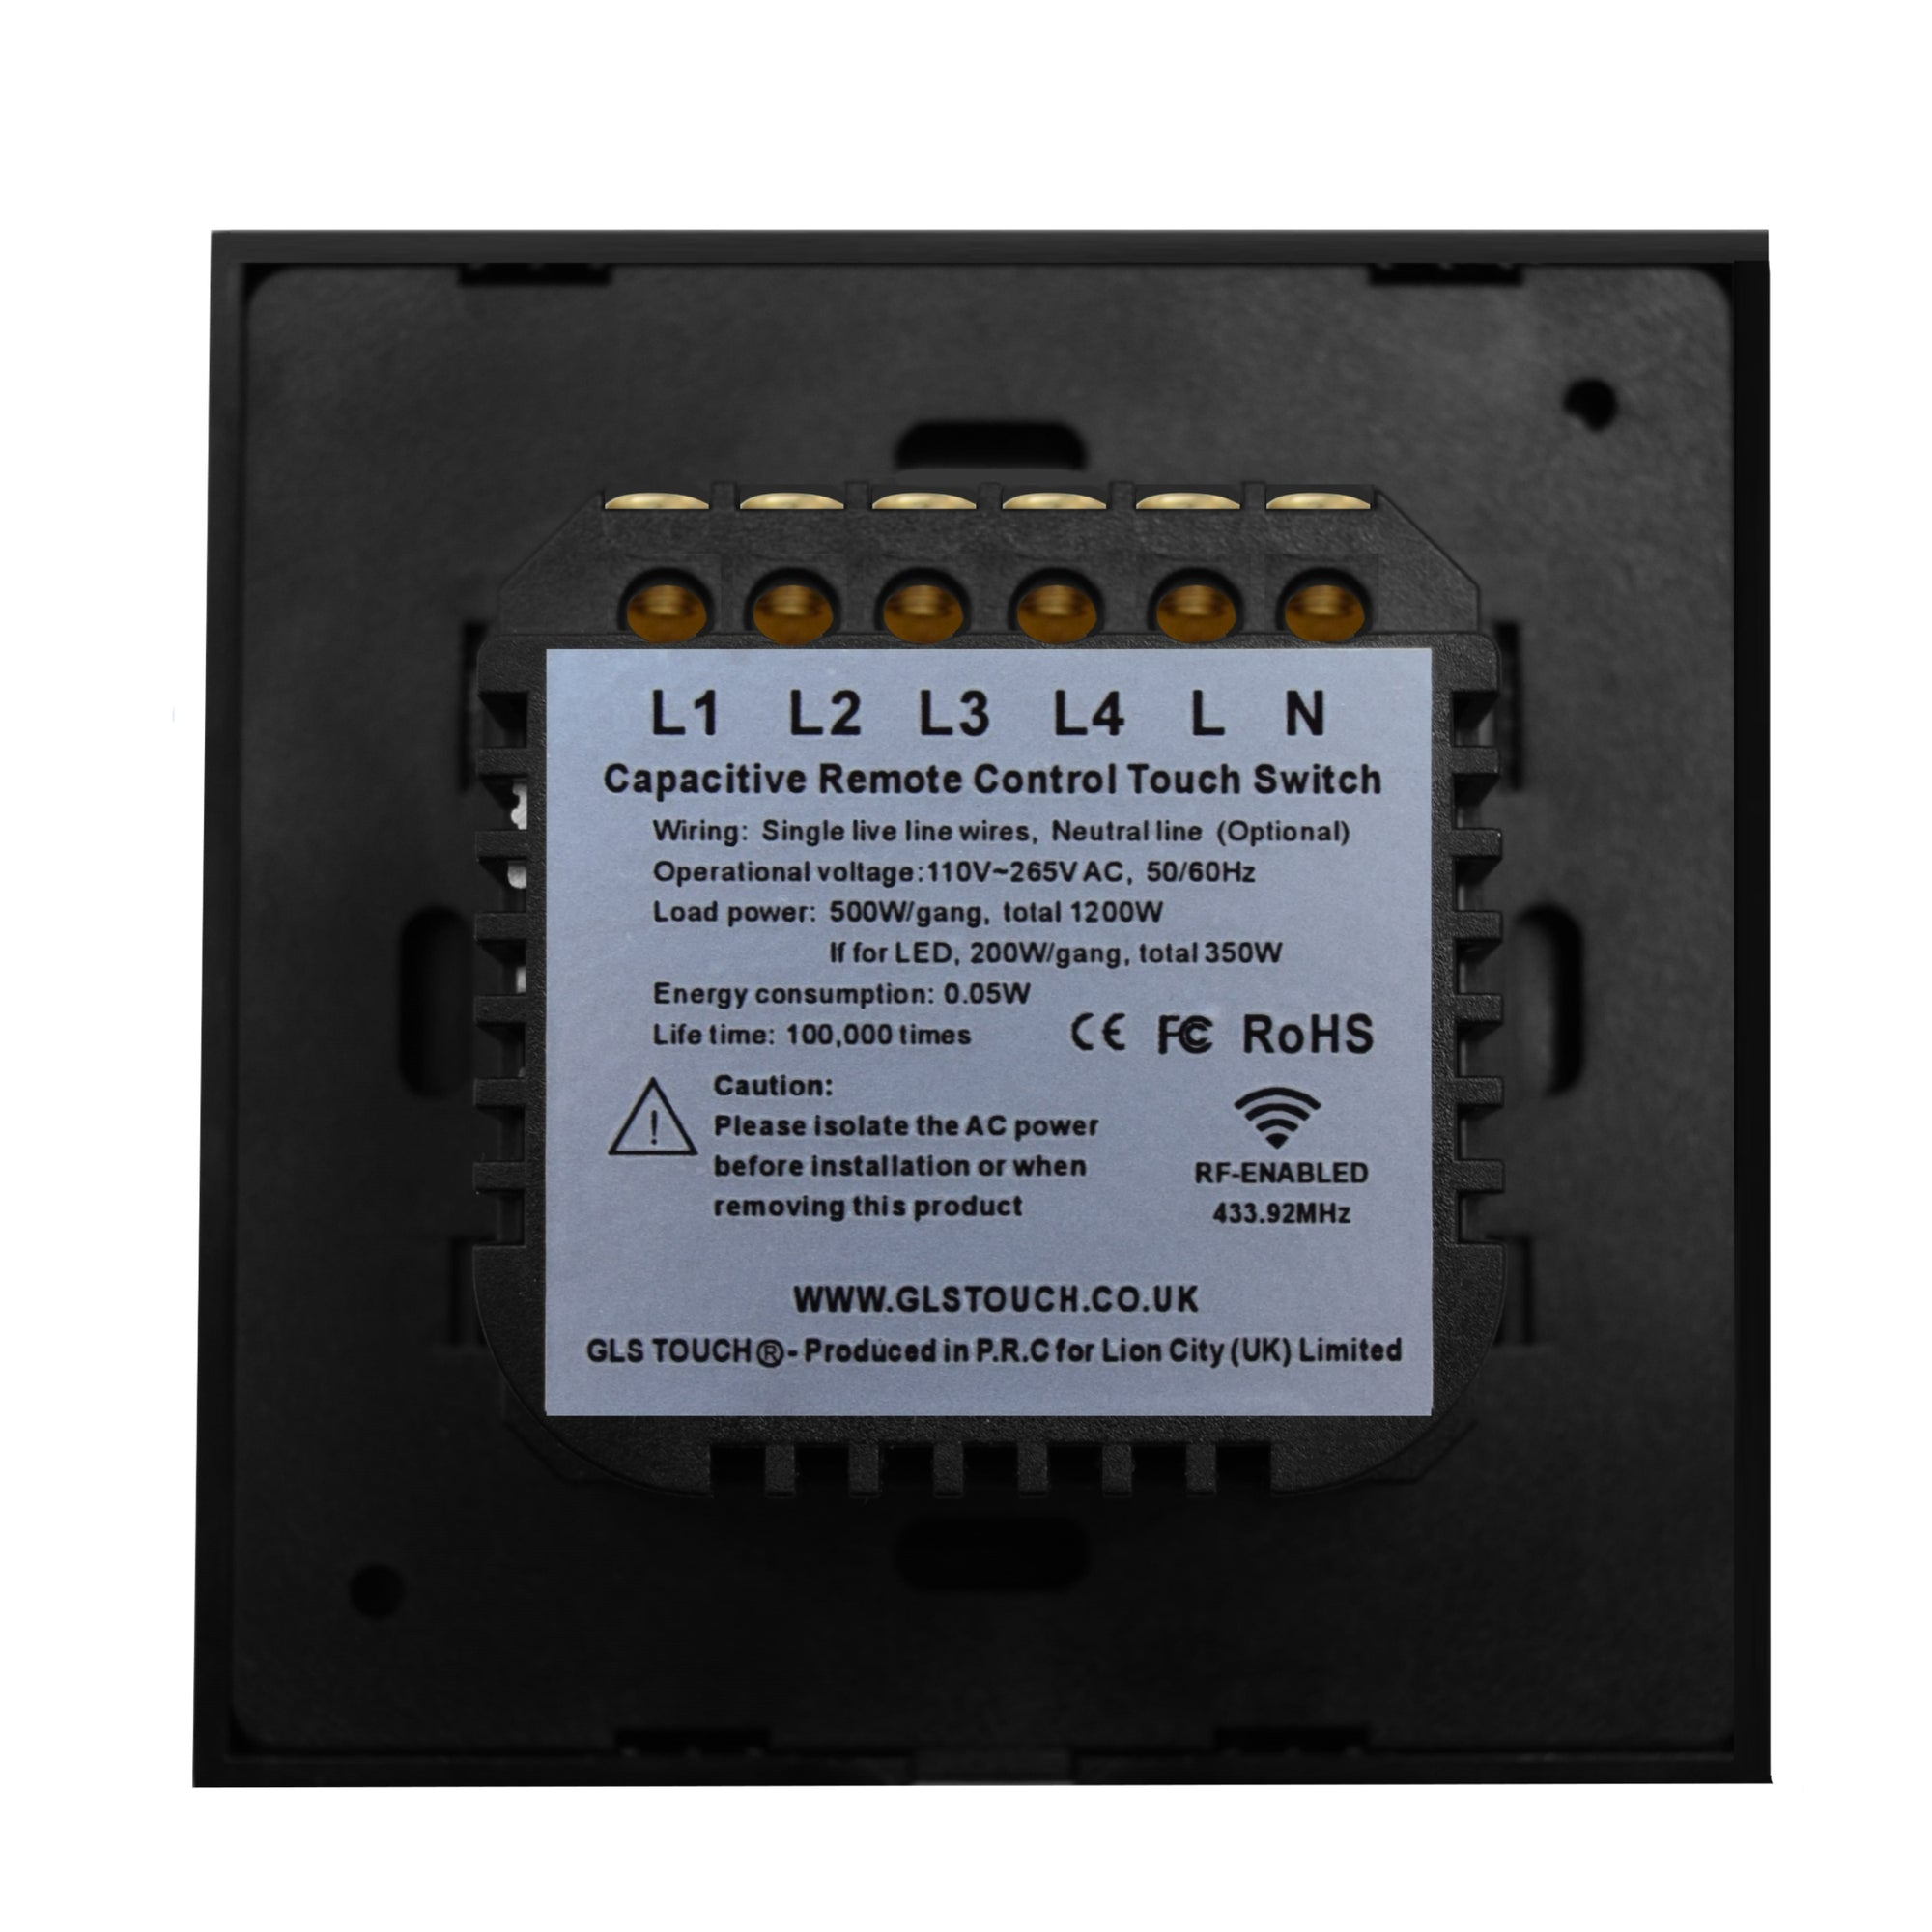 Black Gl Touch Panel Light Switch 4 Gang 1 Way on wiring a 3-way switch, 4-way switch diagram with power to the 4 way switch, installing a 4-way switch,